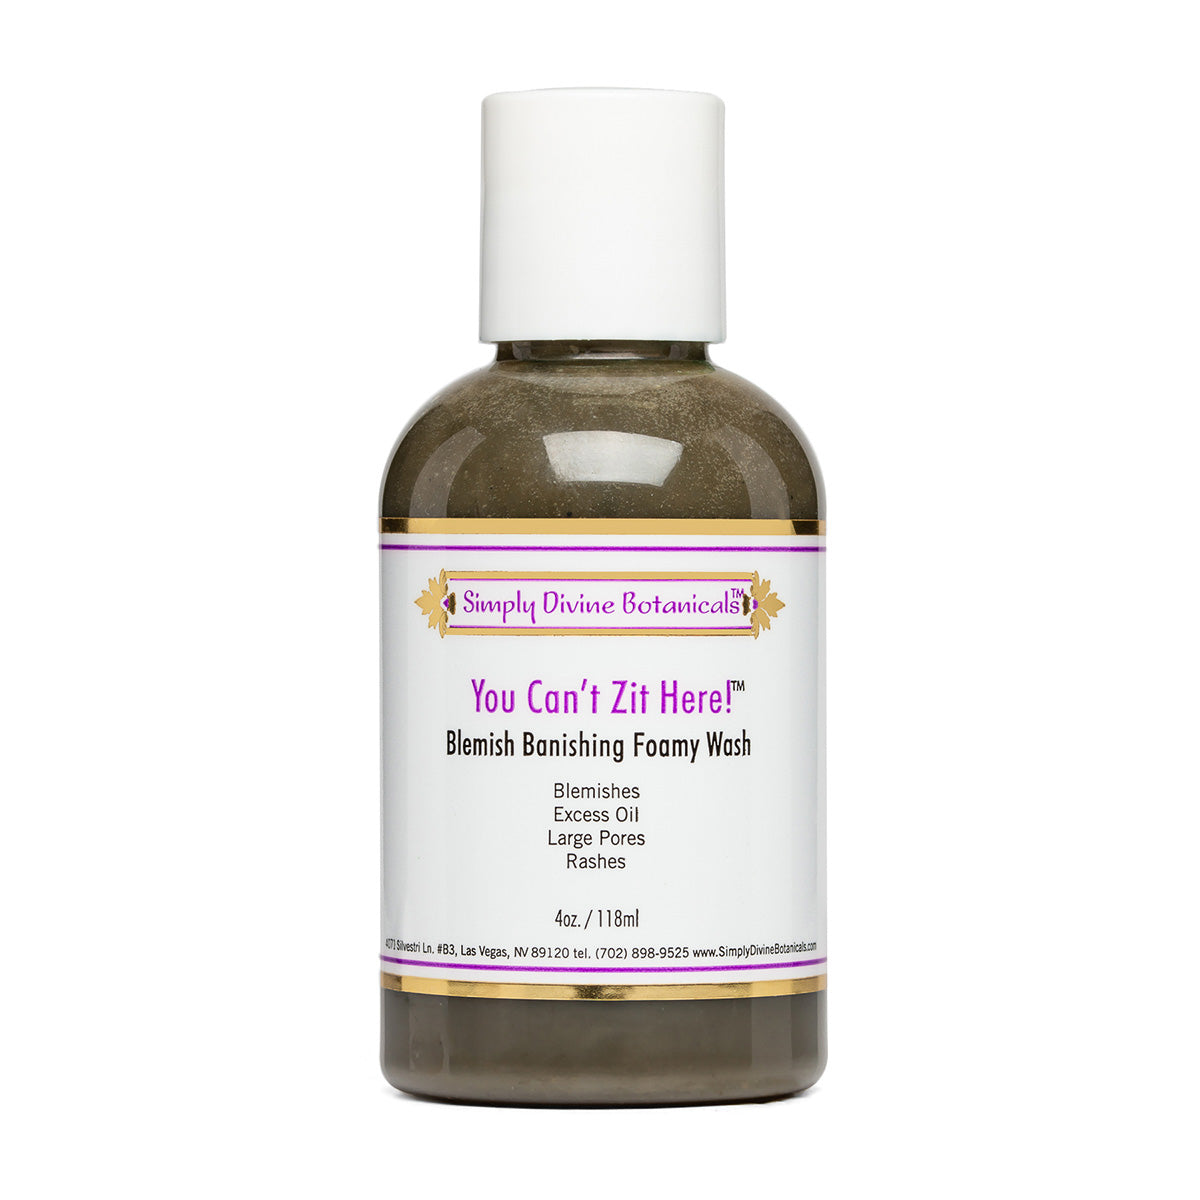 You Can't Zit Here (4 oz) - Simply Divine Botanicals